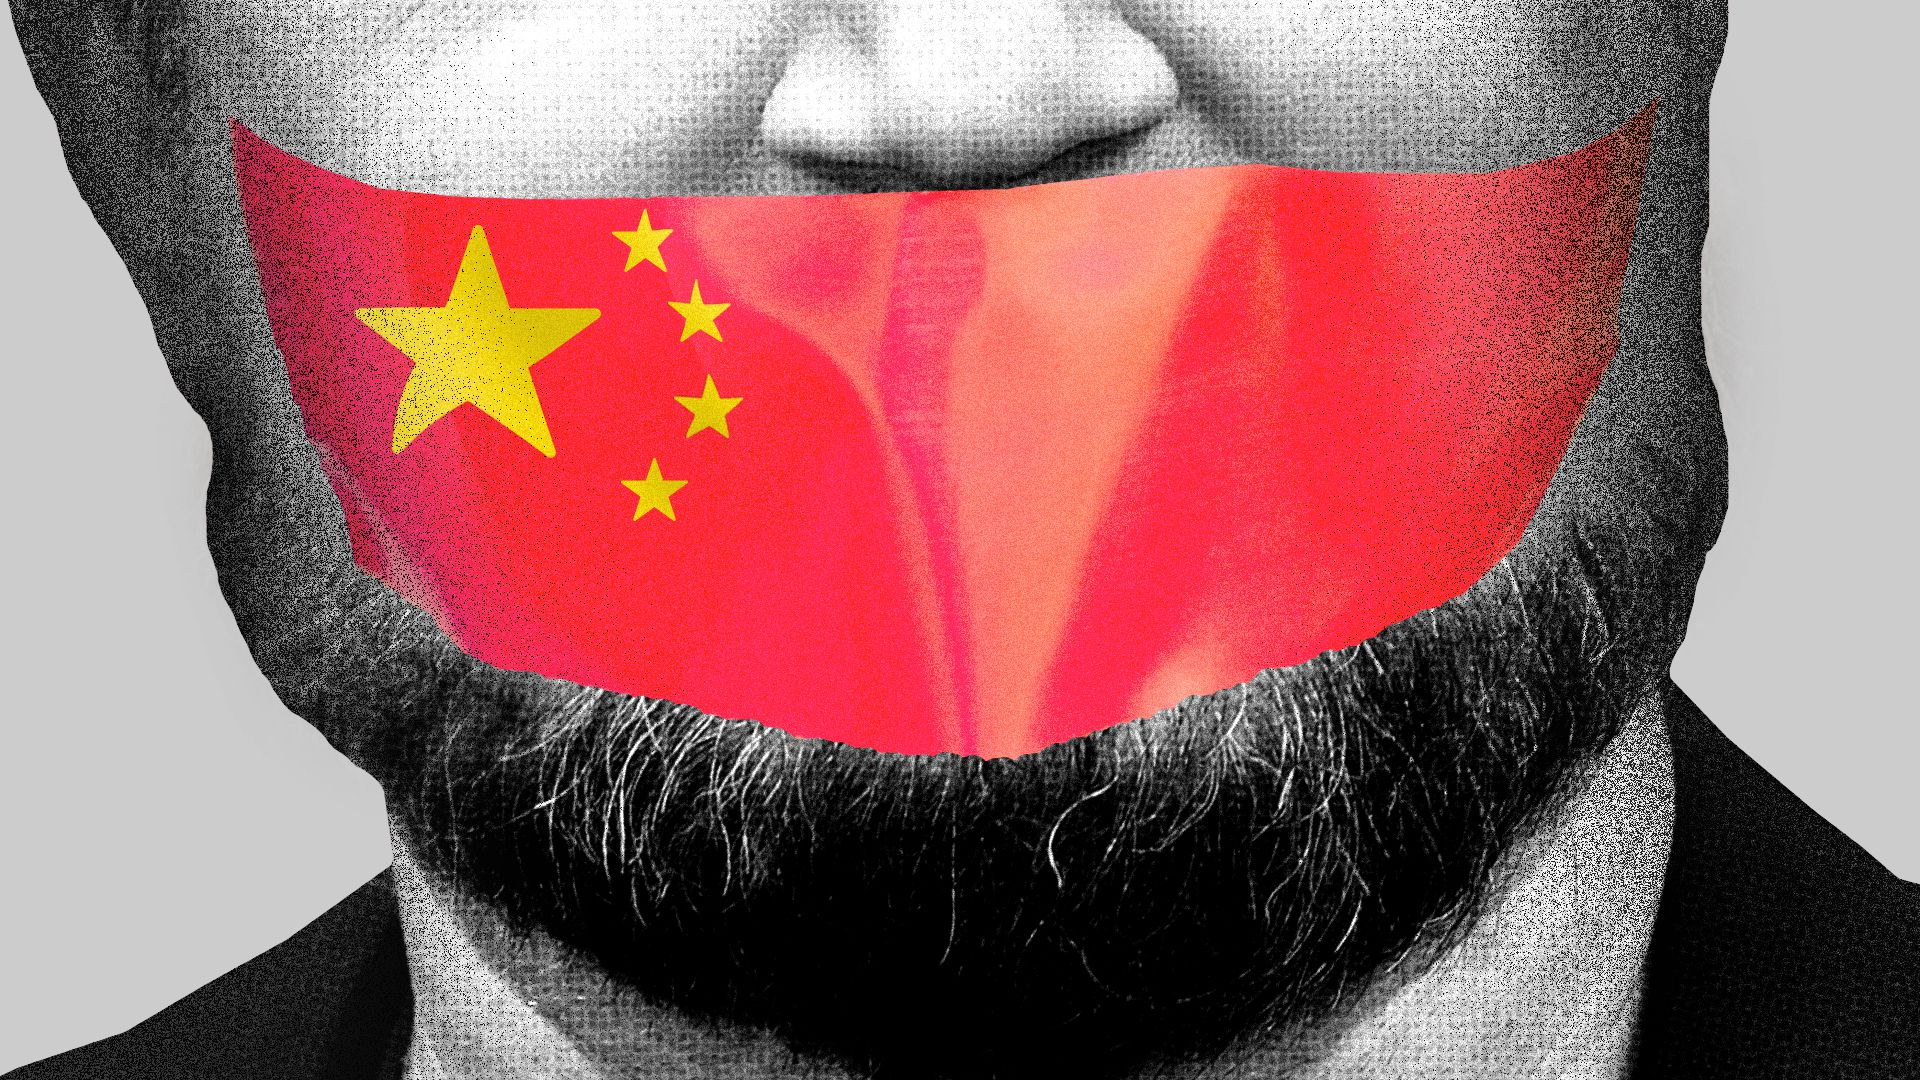 Illustration of a close up of Daryl Morey's face with tape over his mouth, the tape is the Chinese flag.